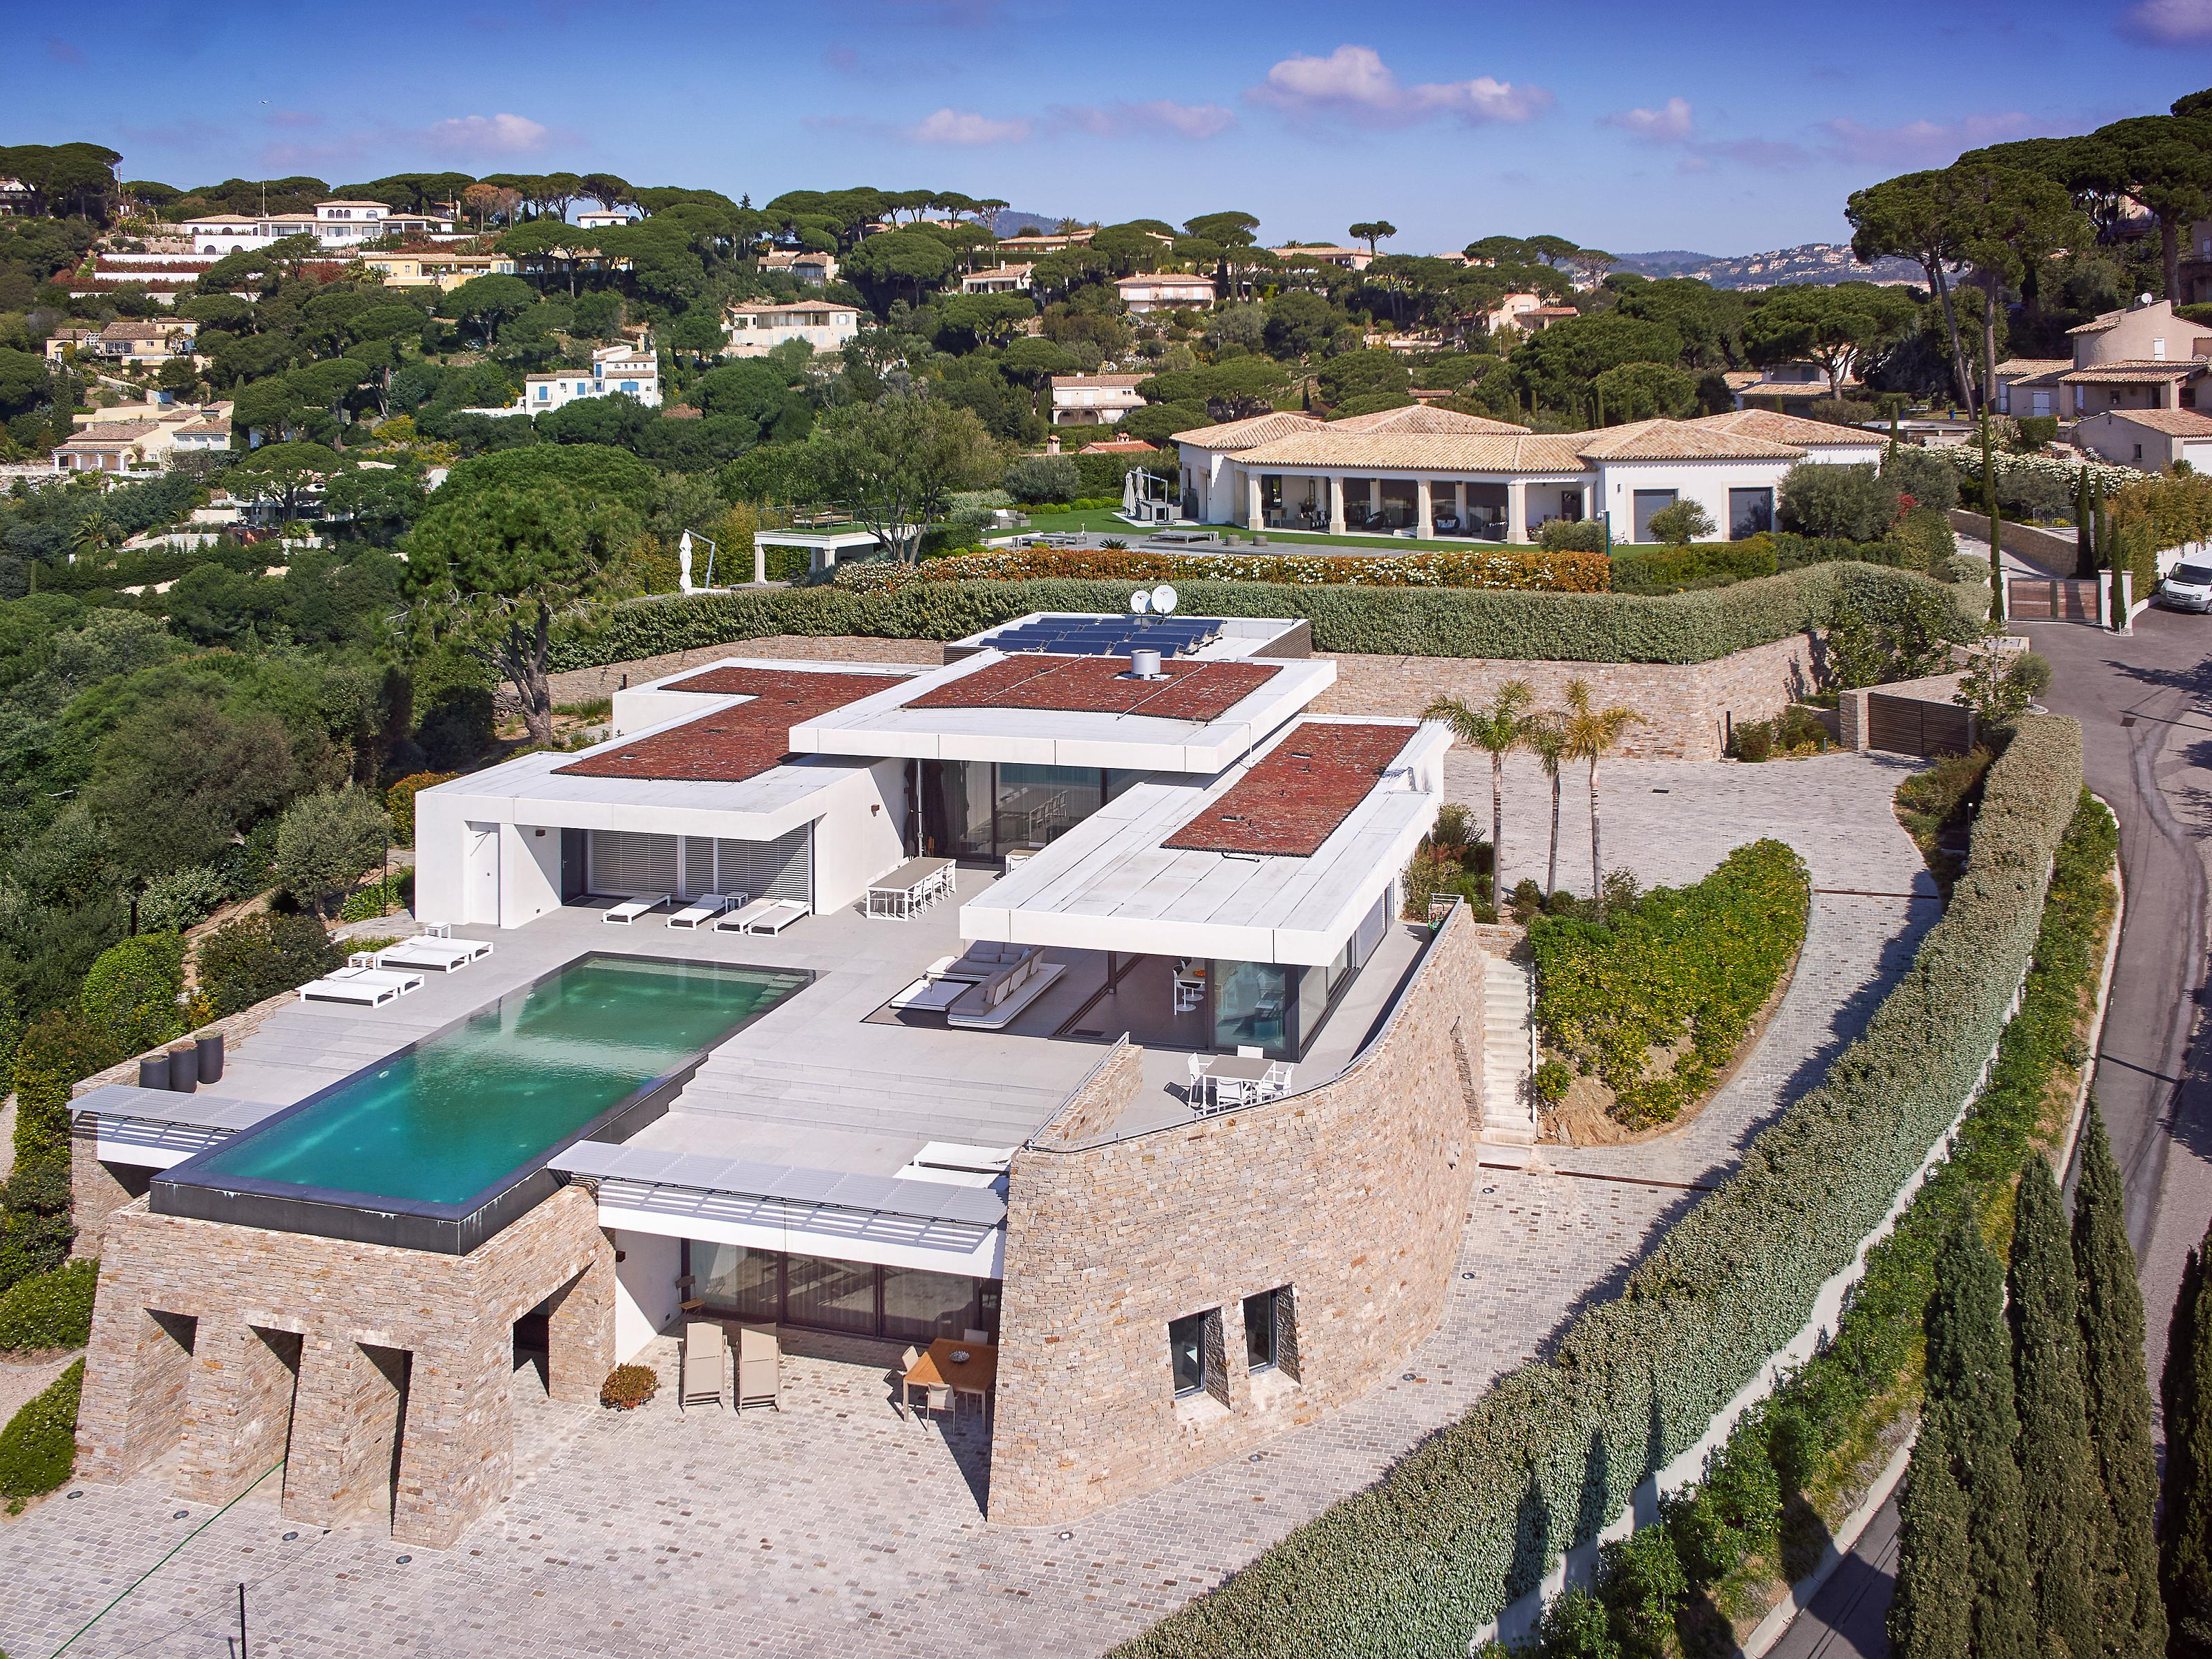 Maison unifamiliale pour l Vente à Joint sole agent. Luxurious contemporary property with panoramic sea views Saint Maxime Other Provence-Alpes-Cote D'Azur, Provence-Alpes-Cote D'Azur 83120 France